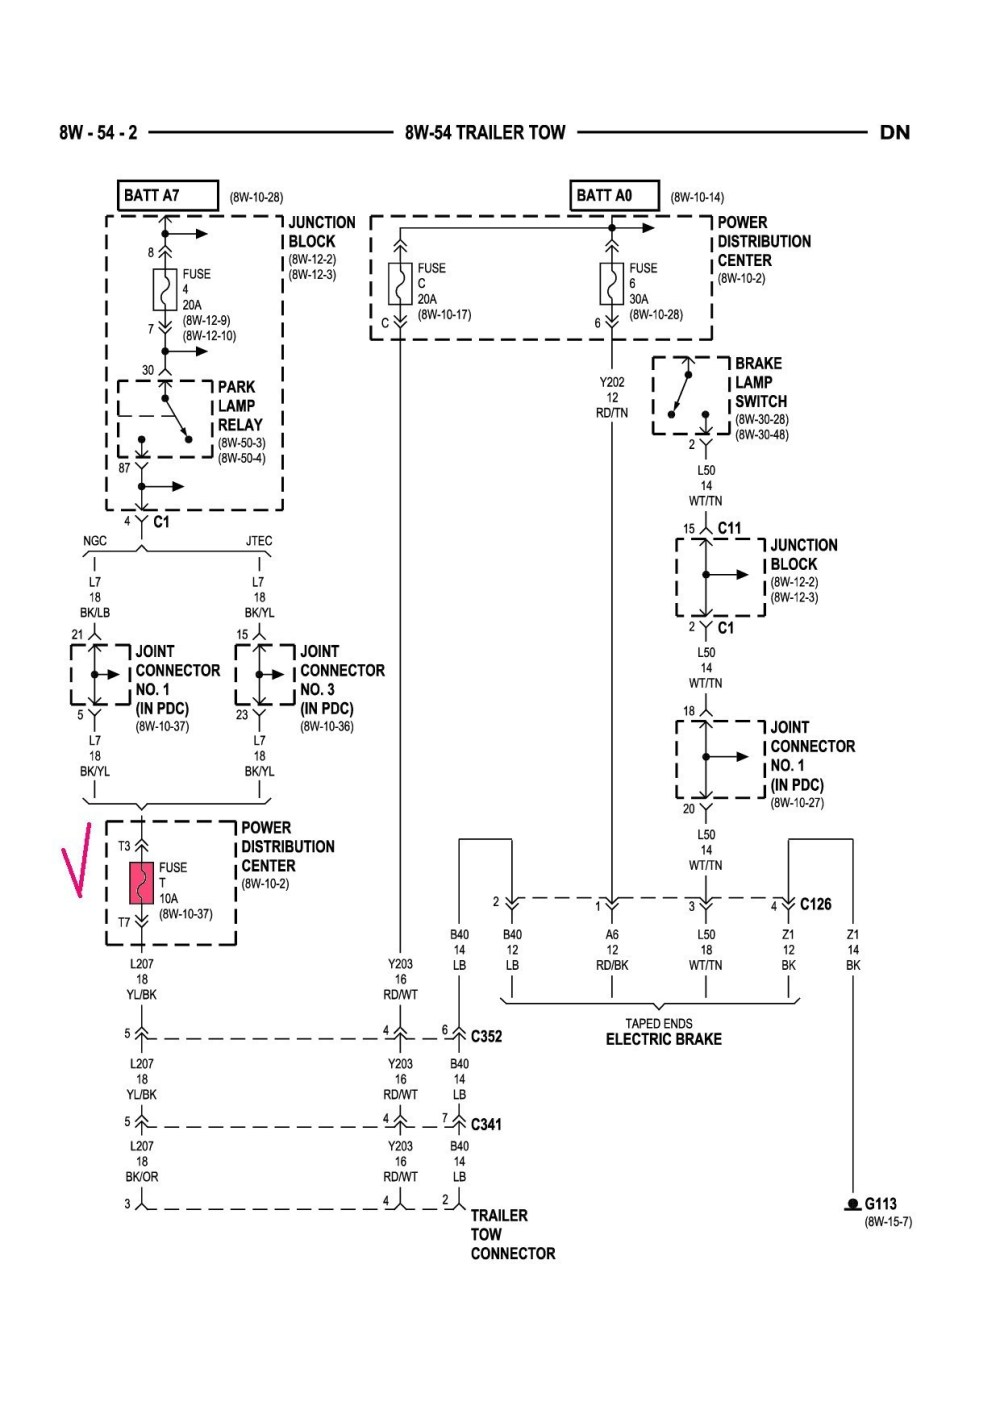 medium resolution of 2001 dodge dakota electrical schematic wiring diagram post 2001 dodge dakota electrical schematic wiring diagram database